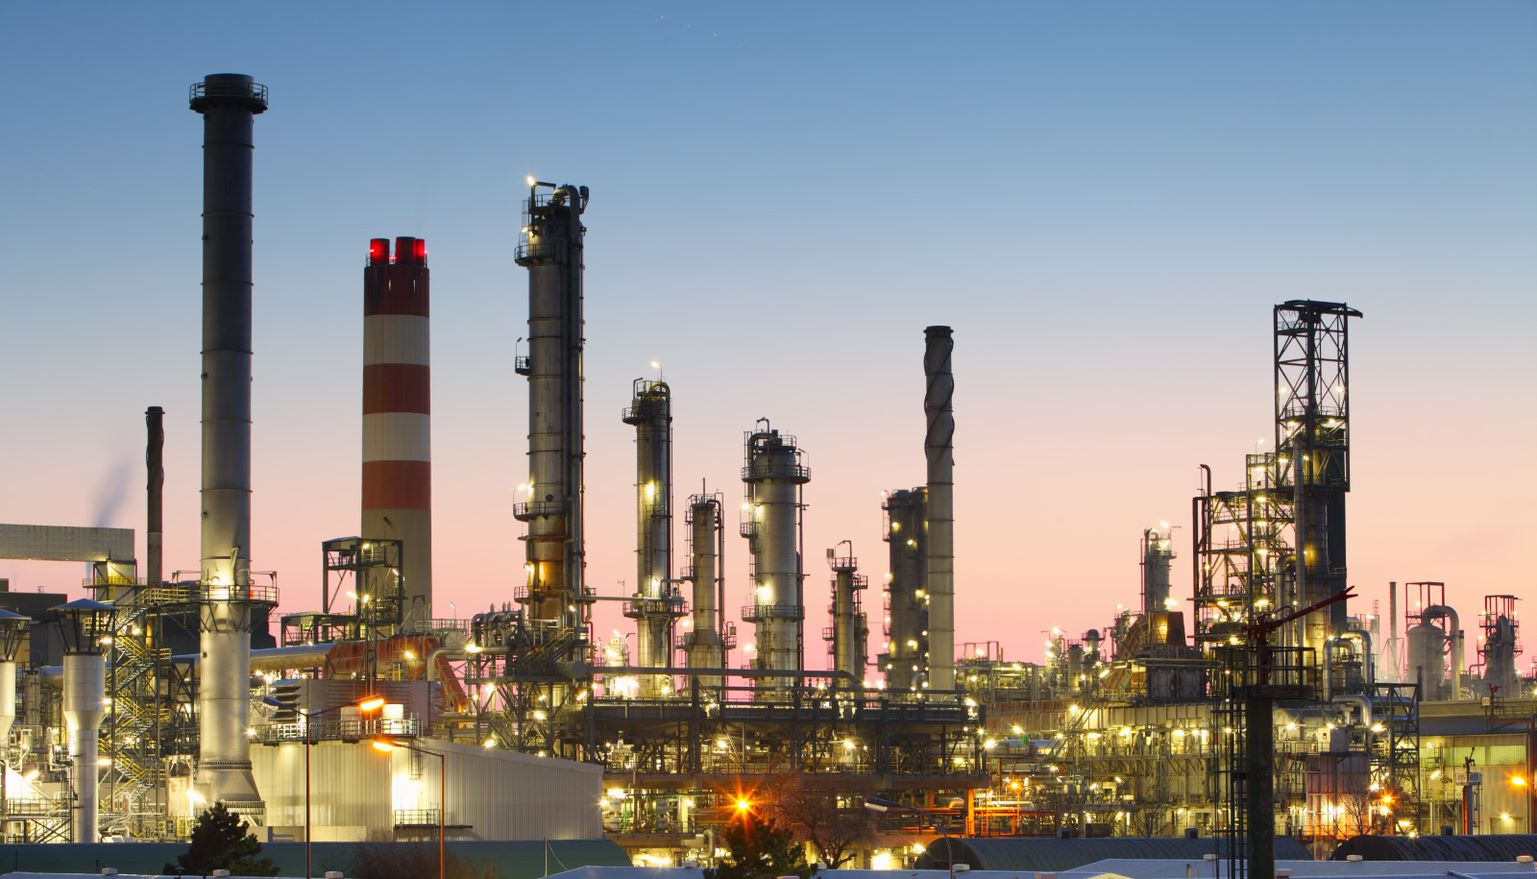 class leading wireless communications oil refinery